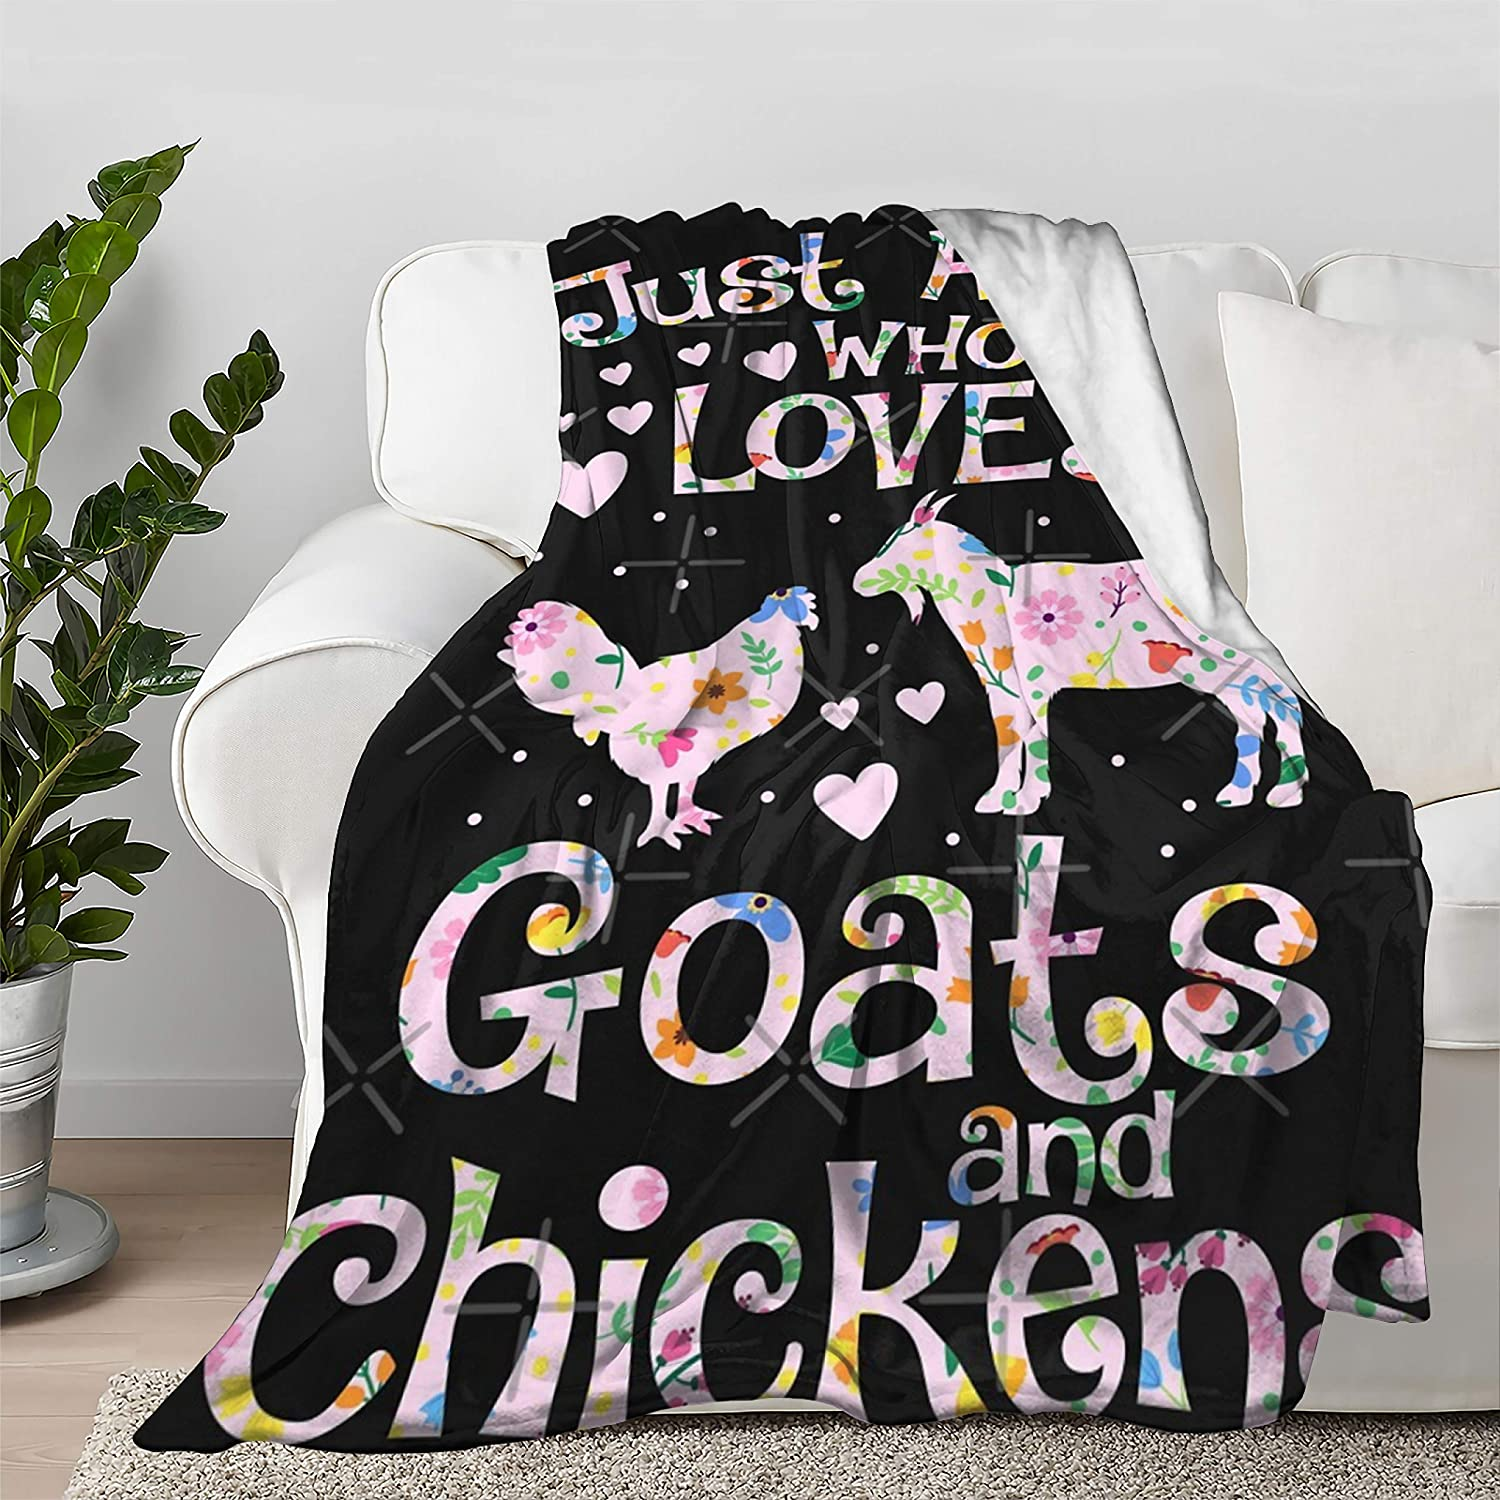 Multi-Styles Just A ギフト プレゼント ご褒美 Girl 祝開店大放出セール開催中 Who Loves Goats and Lover Chickens Farm